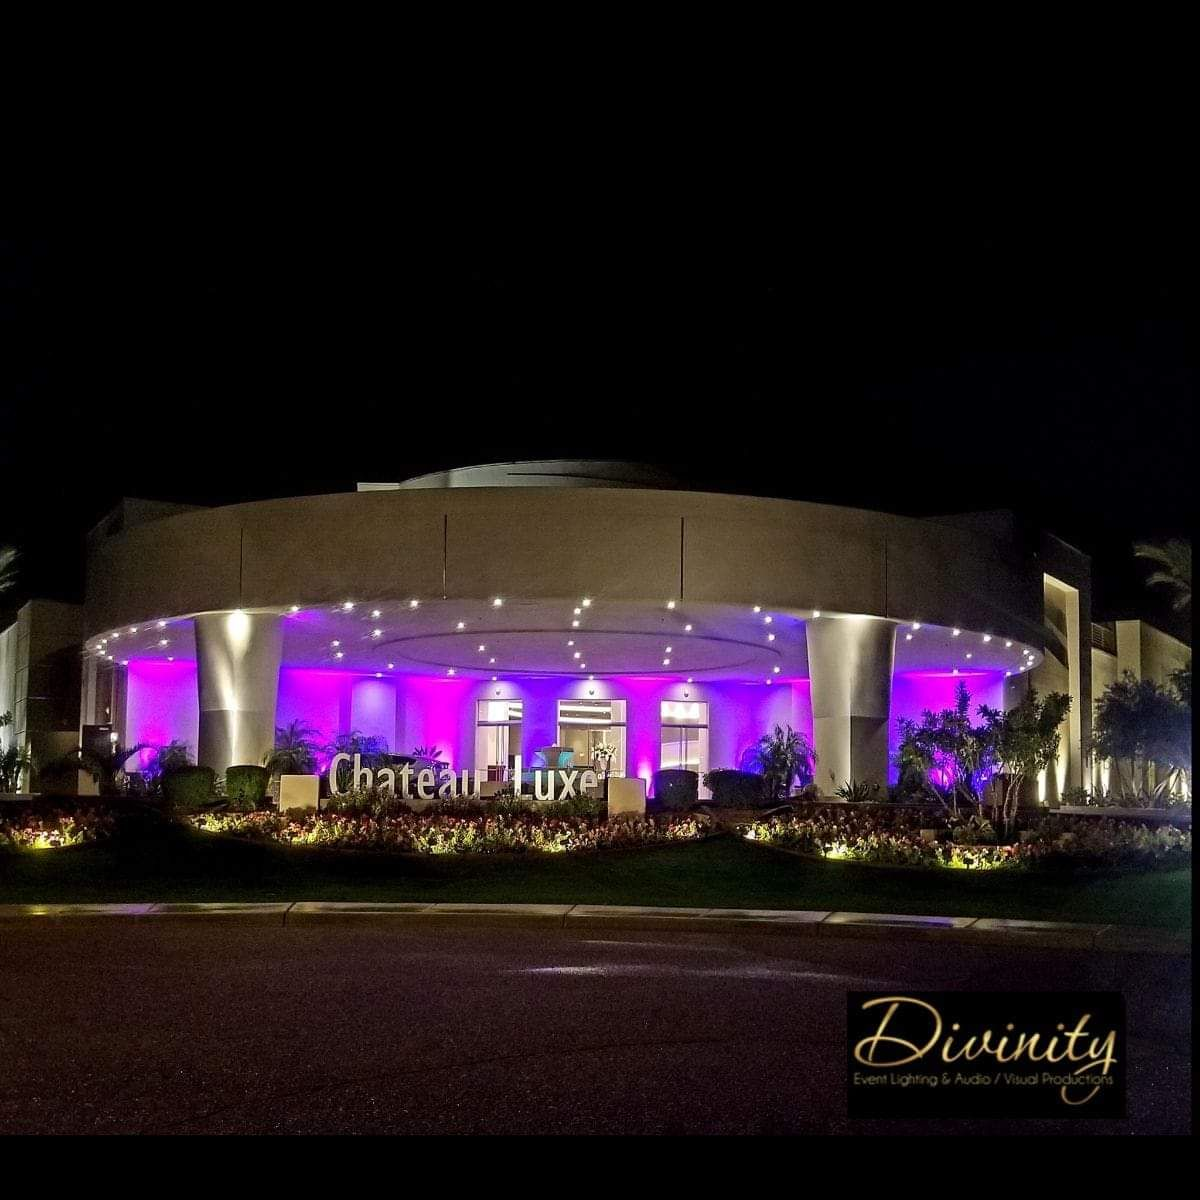 Entrance uplighting sets the tone and anticipation for your guests😎 #divinityeventlighting #lighting #audiovisual #divinityteam #weddings #corporate #events #uplighting #uplights #led #bistro #wireless #ceremony #reception